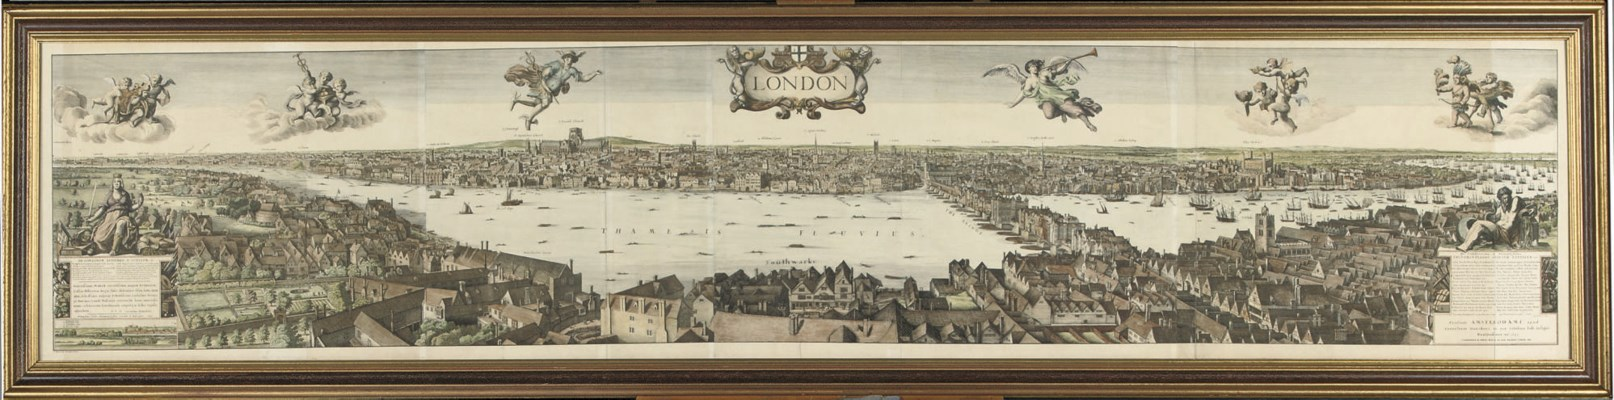 MARTIN, ROBERT, 'A VIEW OF LON